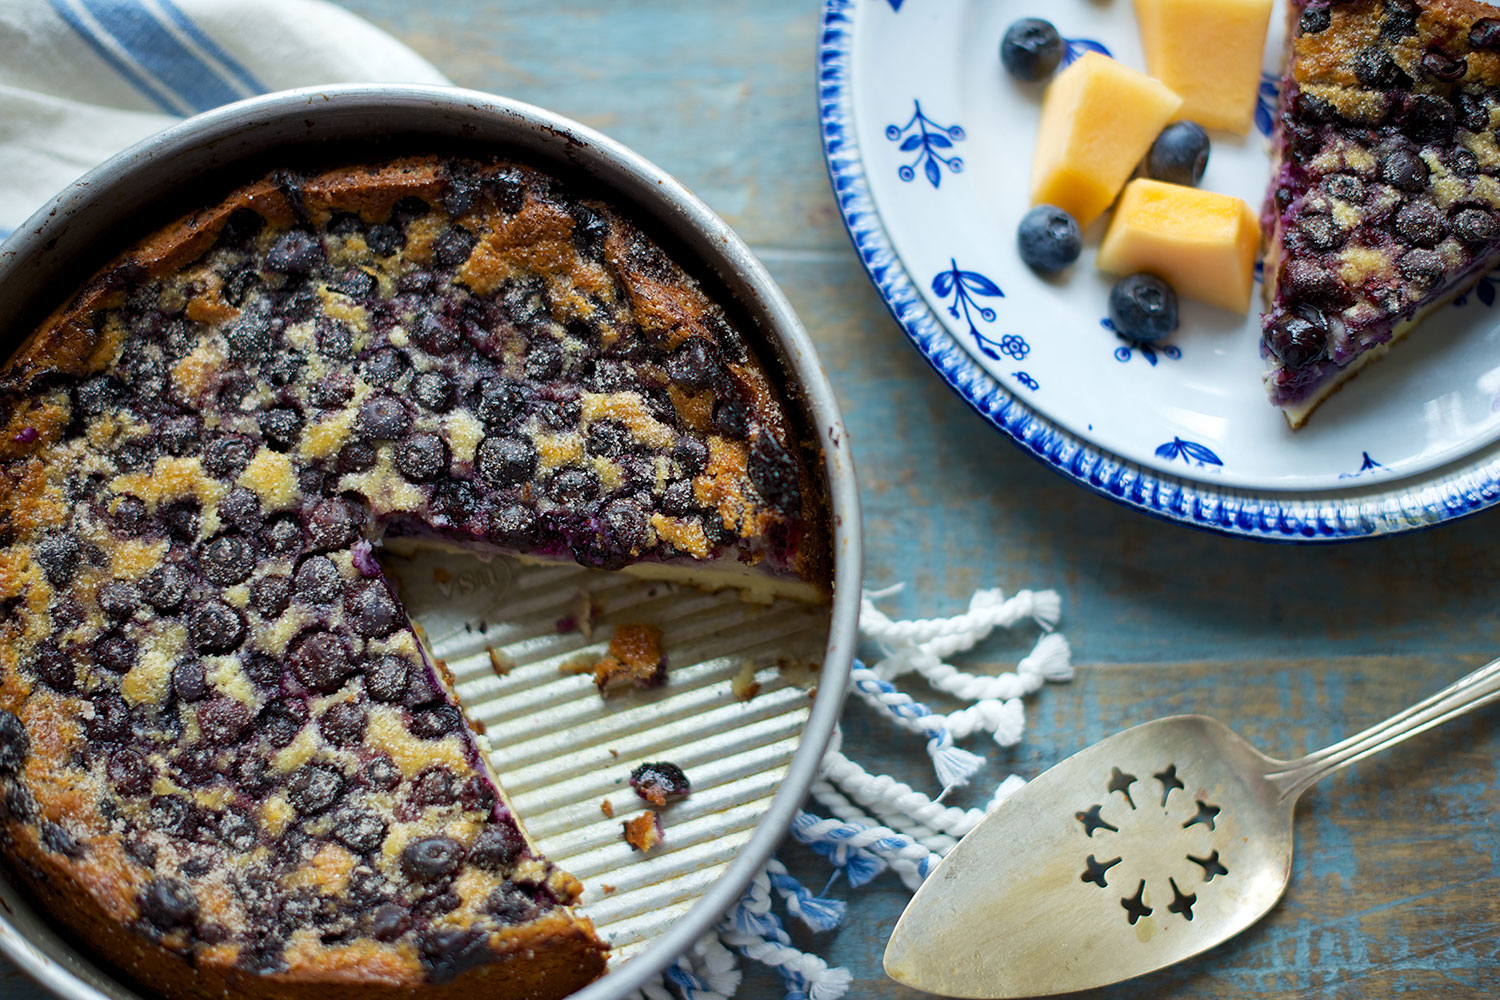 blueberry-breakfast-cake_0715.jpg